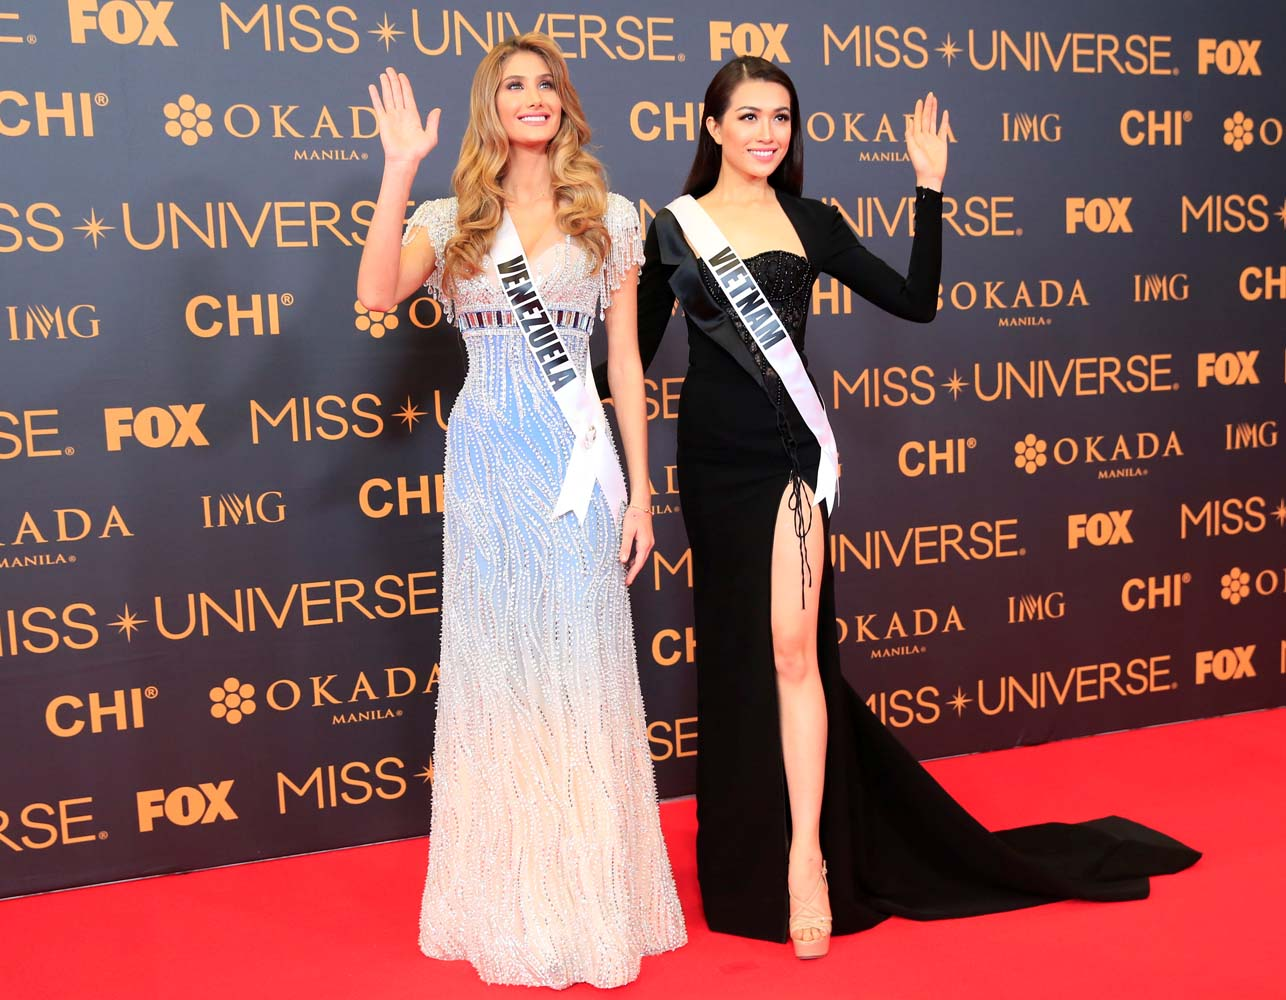 Miss Universe candidates Mariam Habach of Venezuela and Dang Thi Le Hang of Vietnam pose for a picture during a red carpet inside a SMX convention in metro Manila, Philippines January 29, 2017. REUTERS/Romeo Ranoco